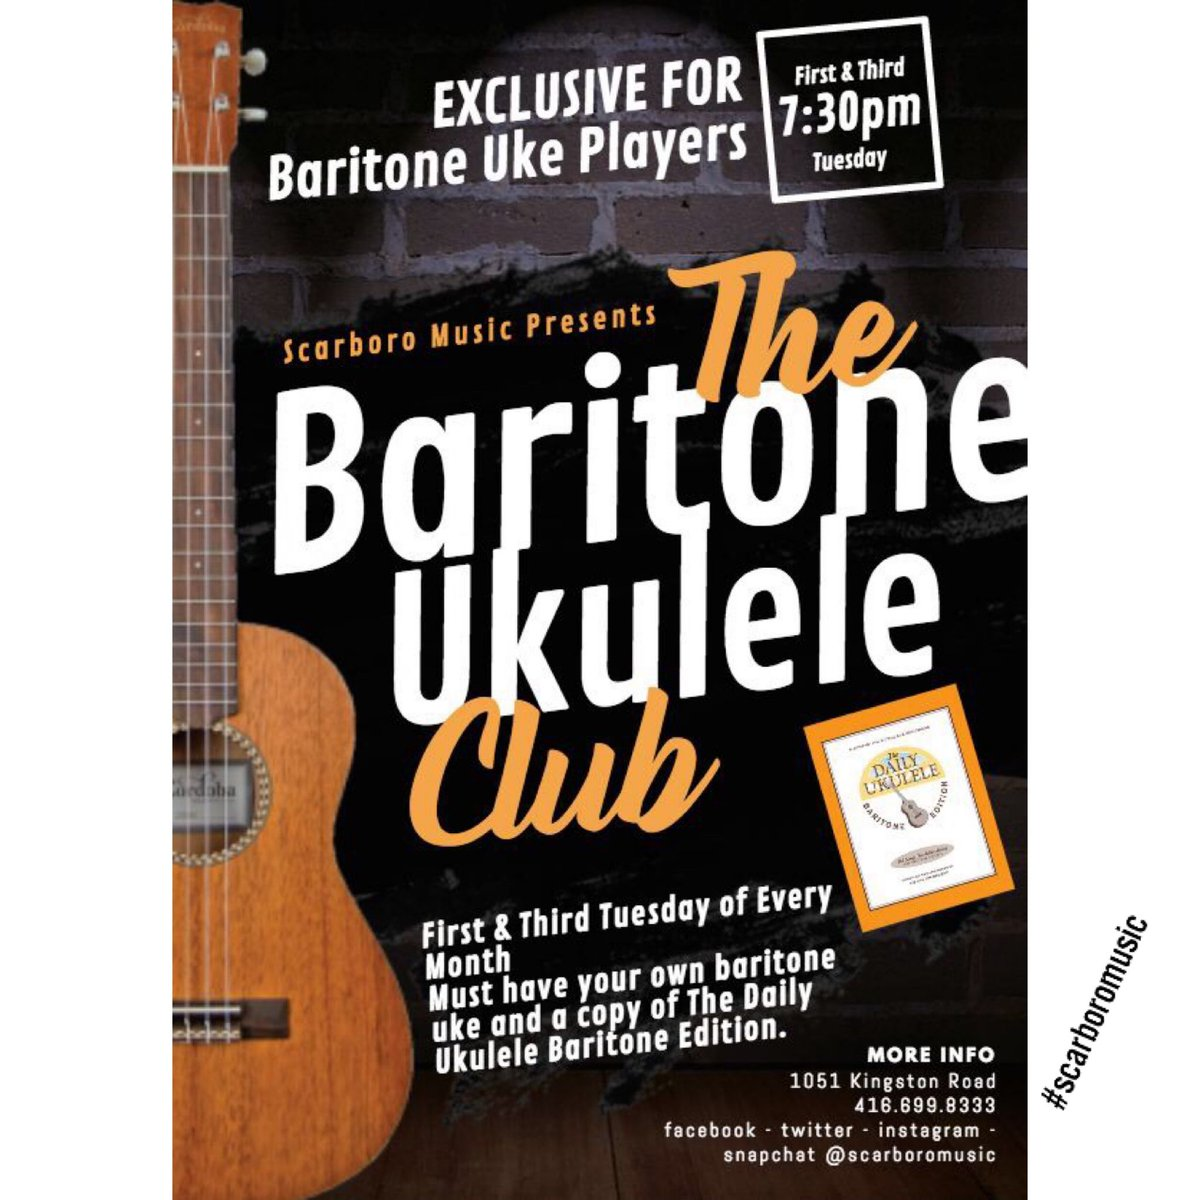 There will be no ukes and lattes jam on Monday! Tuesday - Baritone uke jam at 7:30pm at Scarboro Music - join us for and exclusive baritone only jam! #wearemusic #baritoneuke #baritoneukulele #baritoneukejam<br>http://pic.twitter.com/NtOLTPpAAF